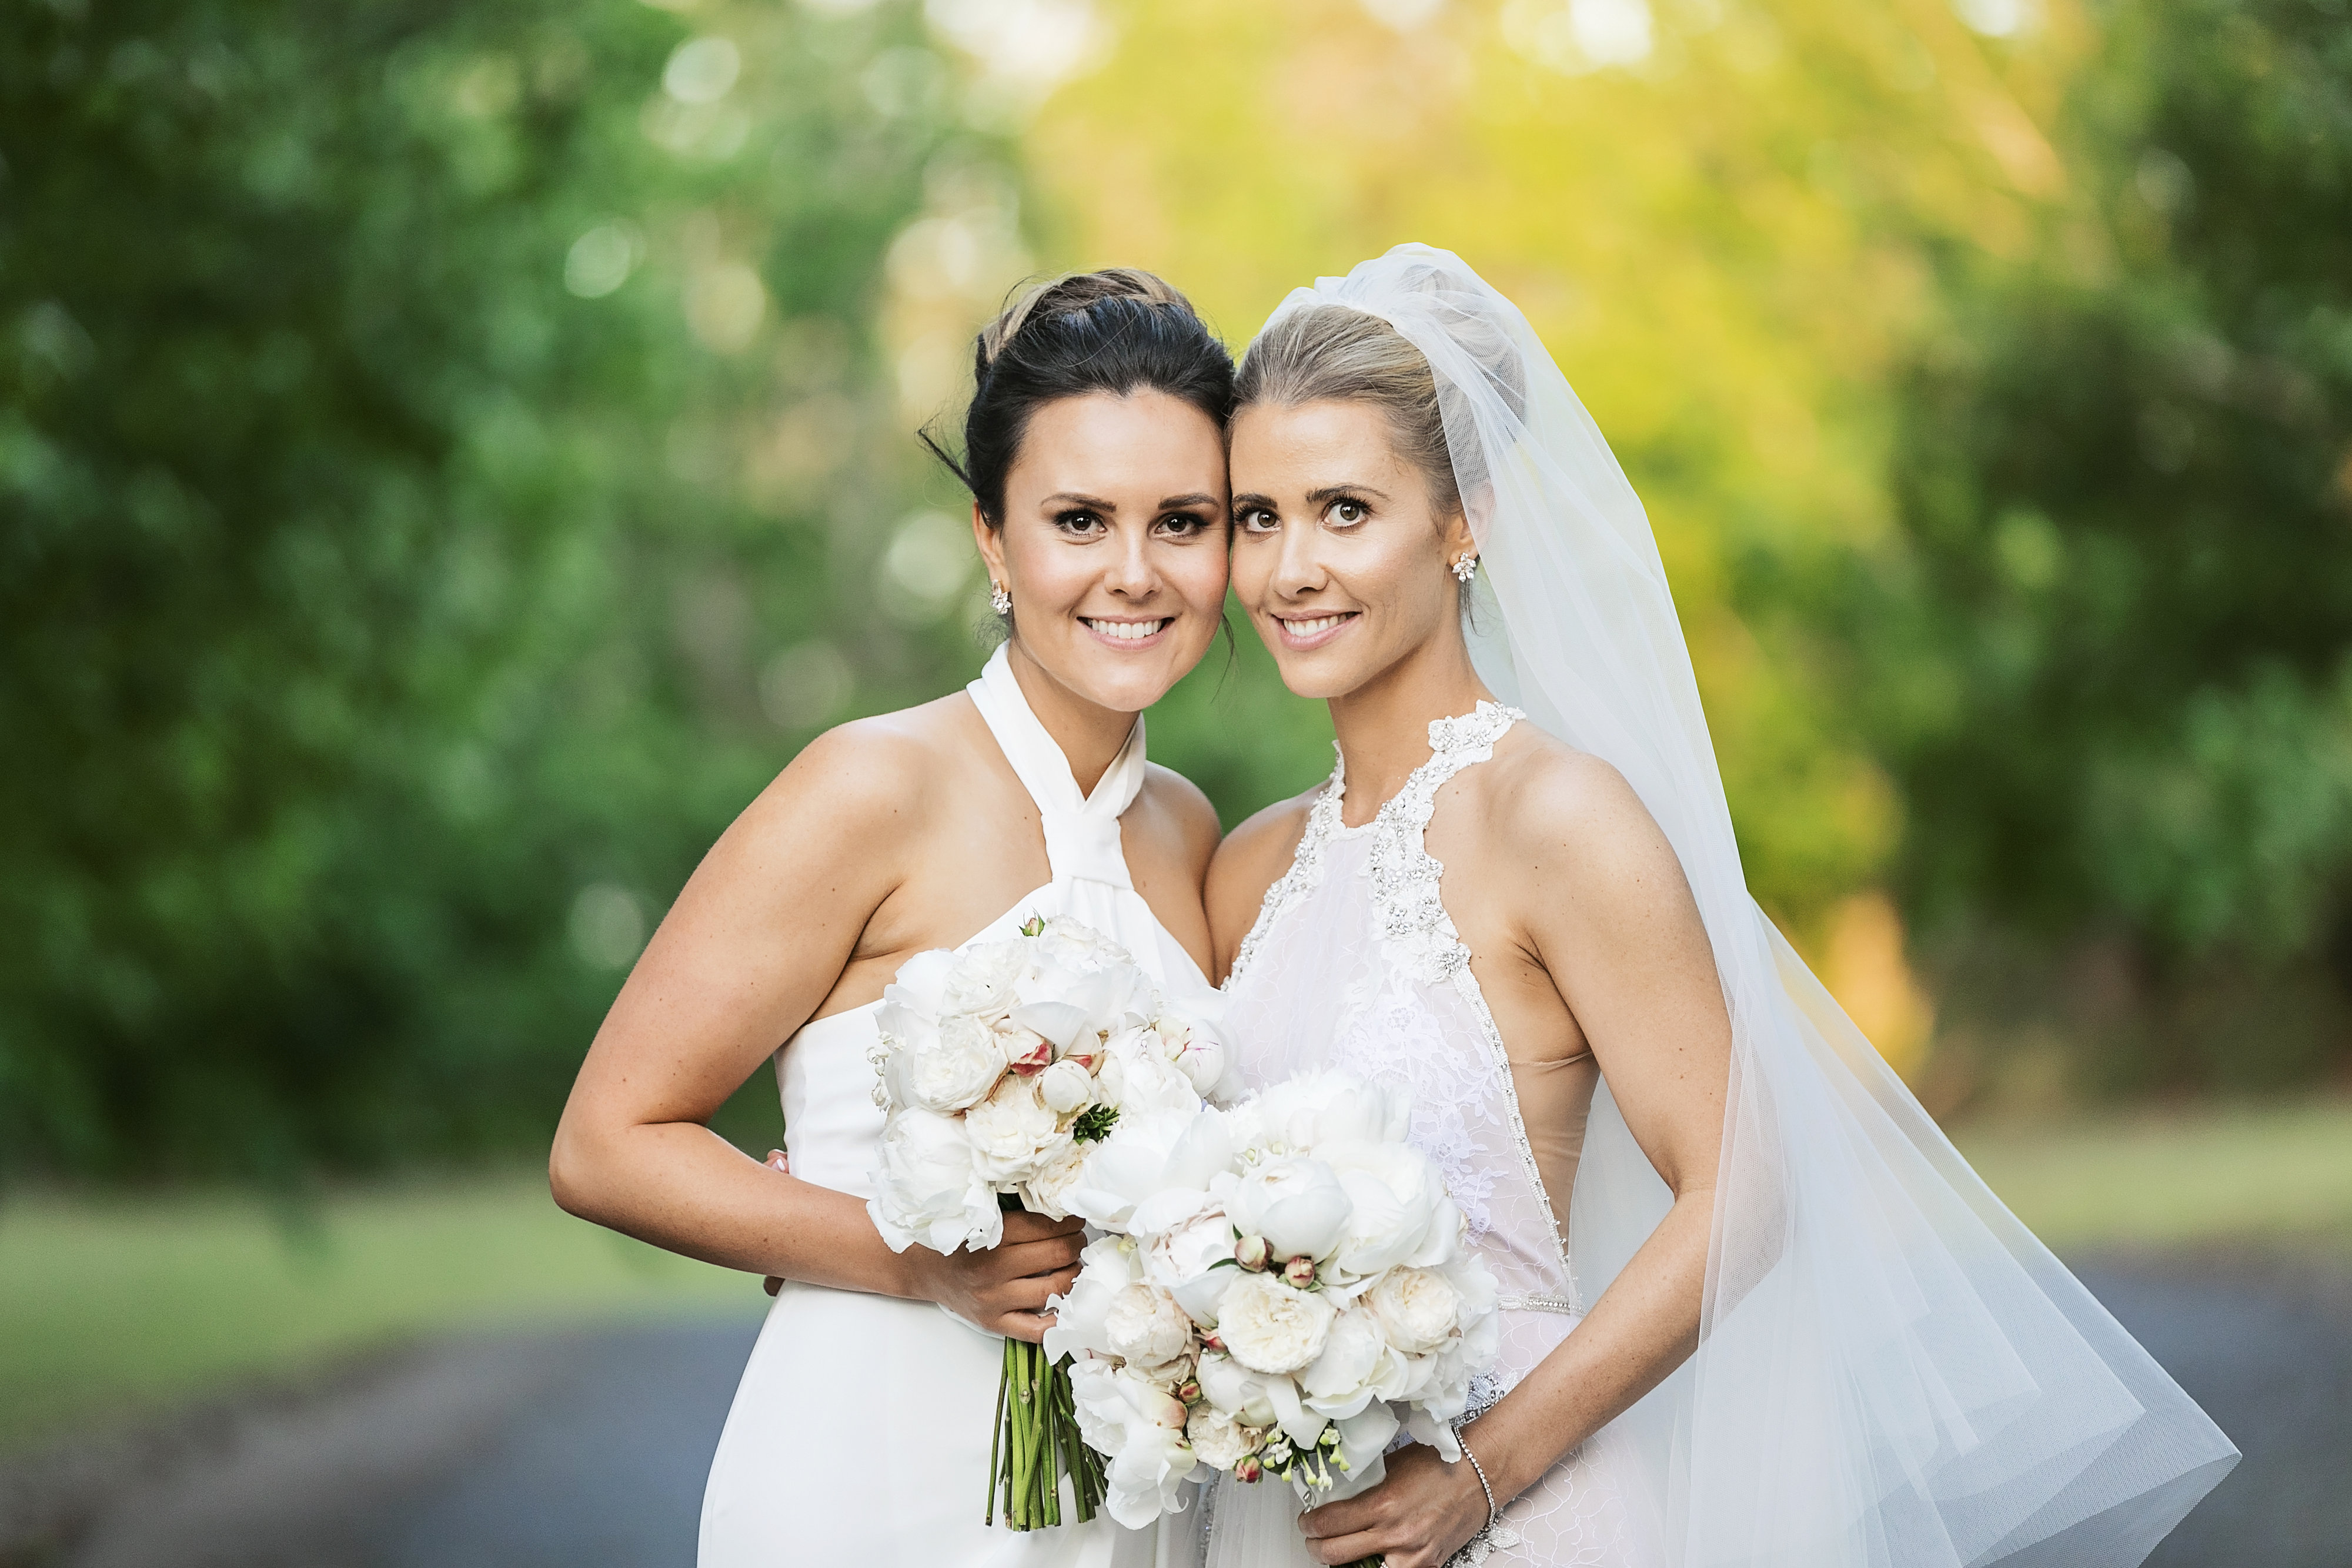 White wedding bouquets featuring peonies and David Austin roses